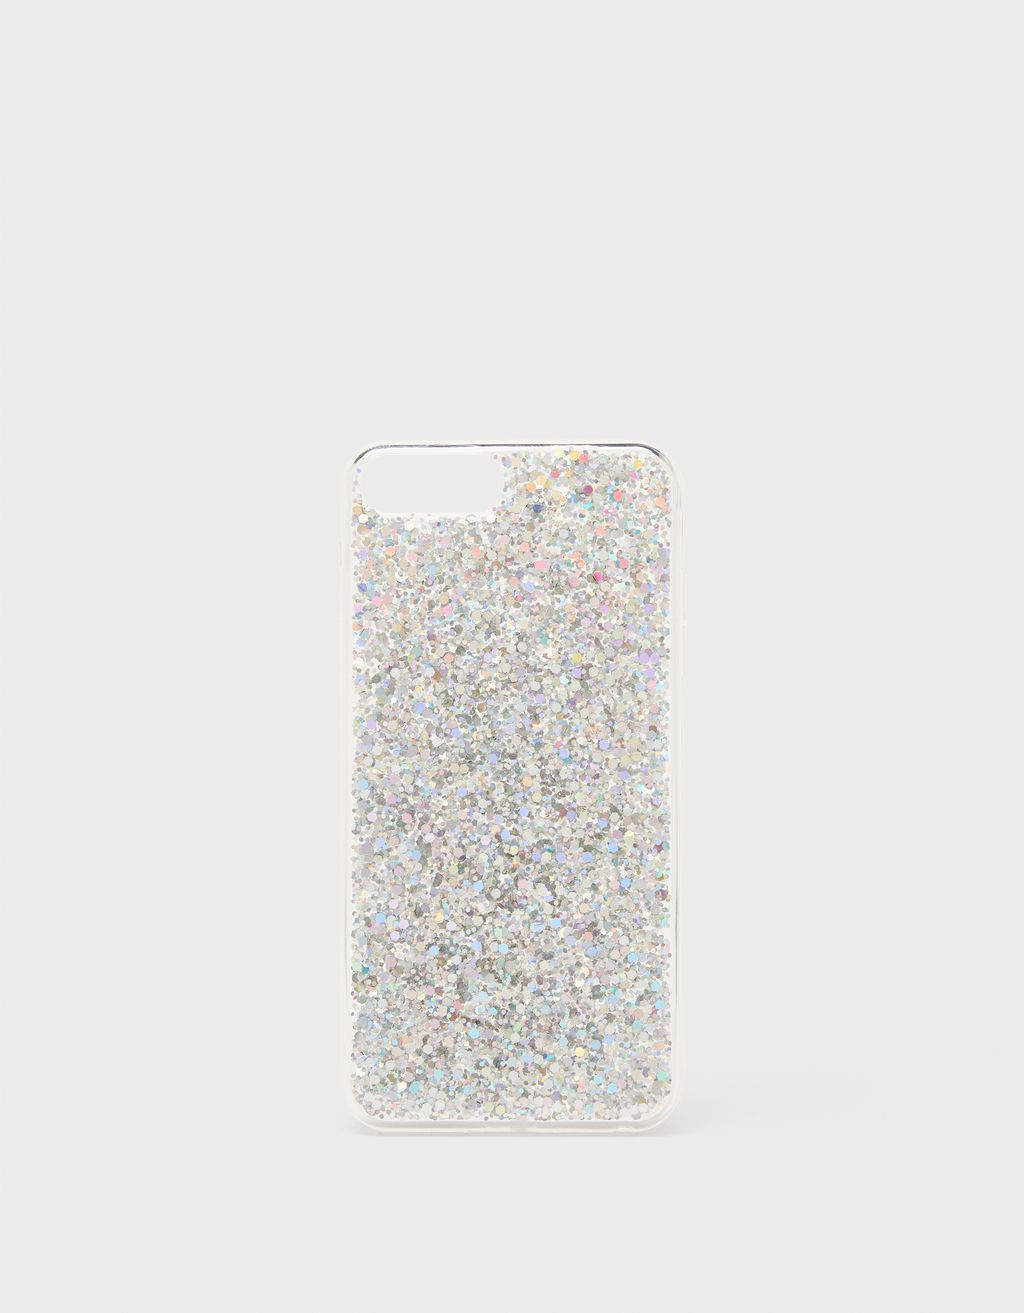 Glanzend hoesje voor iPhone 6 plus / 7 plus / 8 plus